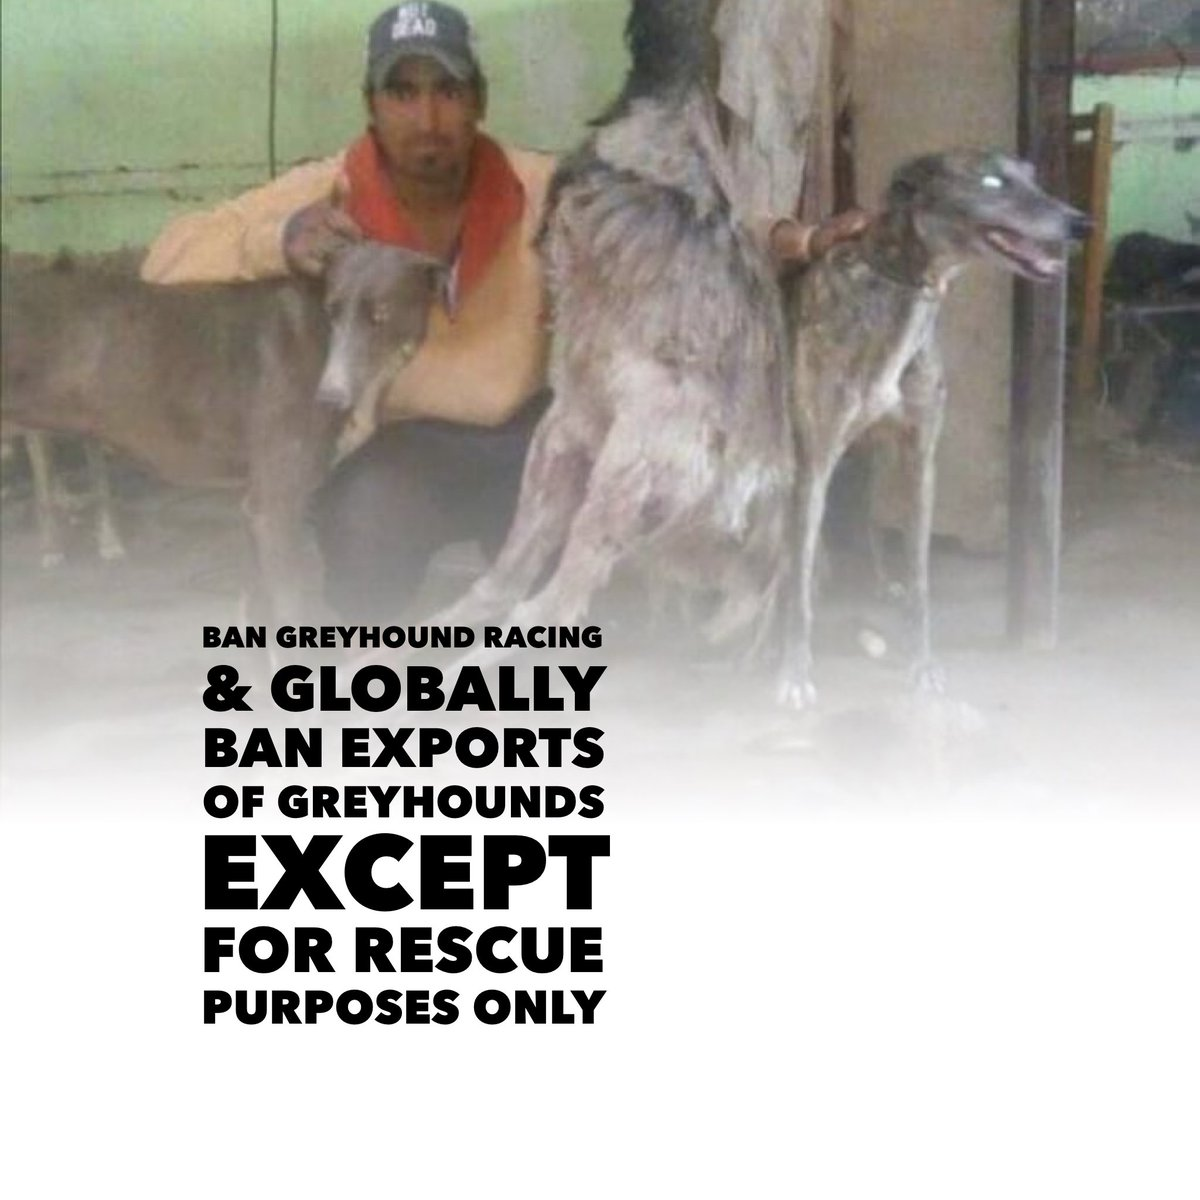 24 Online Protest https://t.co/hdyZRFqLNk  #BanGreyhoundRacing #Ireland #uk  #BAN #GREYHOUNDEXPORTS With the #EXCEPTION of #RESCUE #Purposes Only #StopExportationOfGreyhoundsToAsia  #StopGreyhoundExportsToPakistan @Independent @TheSun @MirrorBreaking_ https://t.co/PmUJbCz4OX